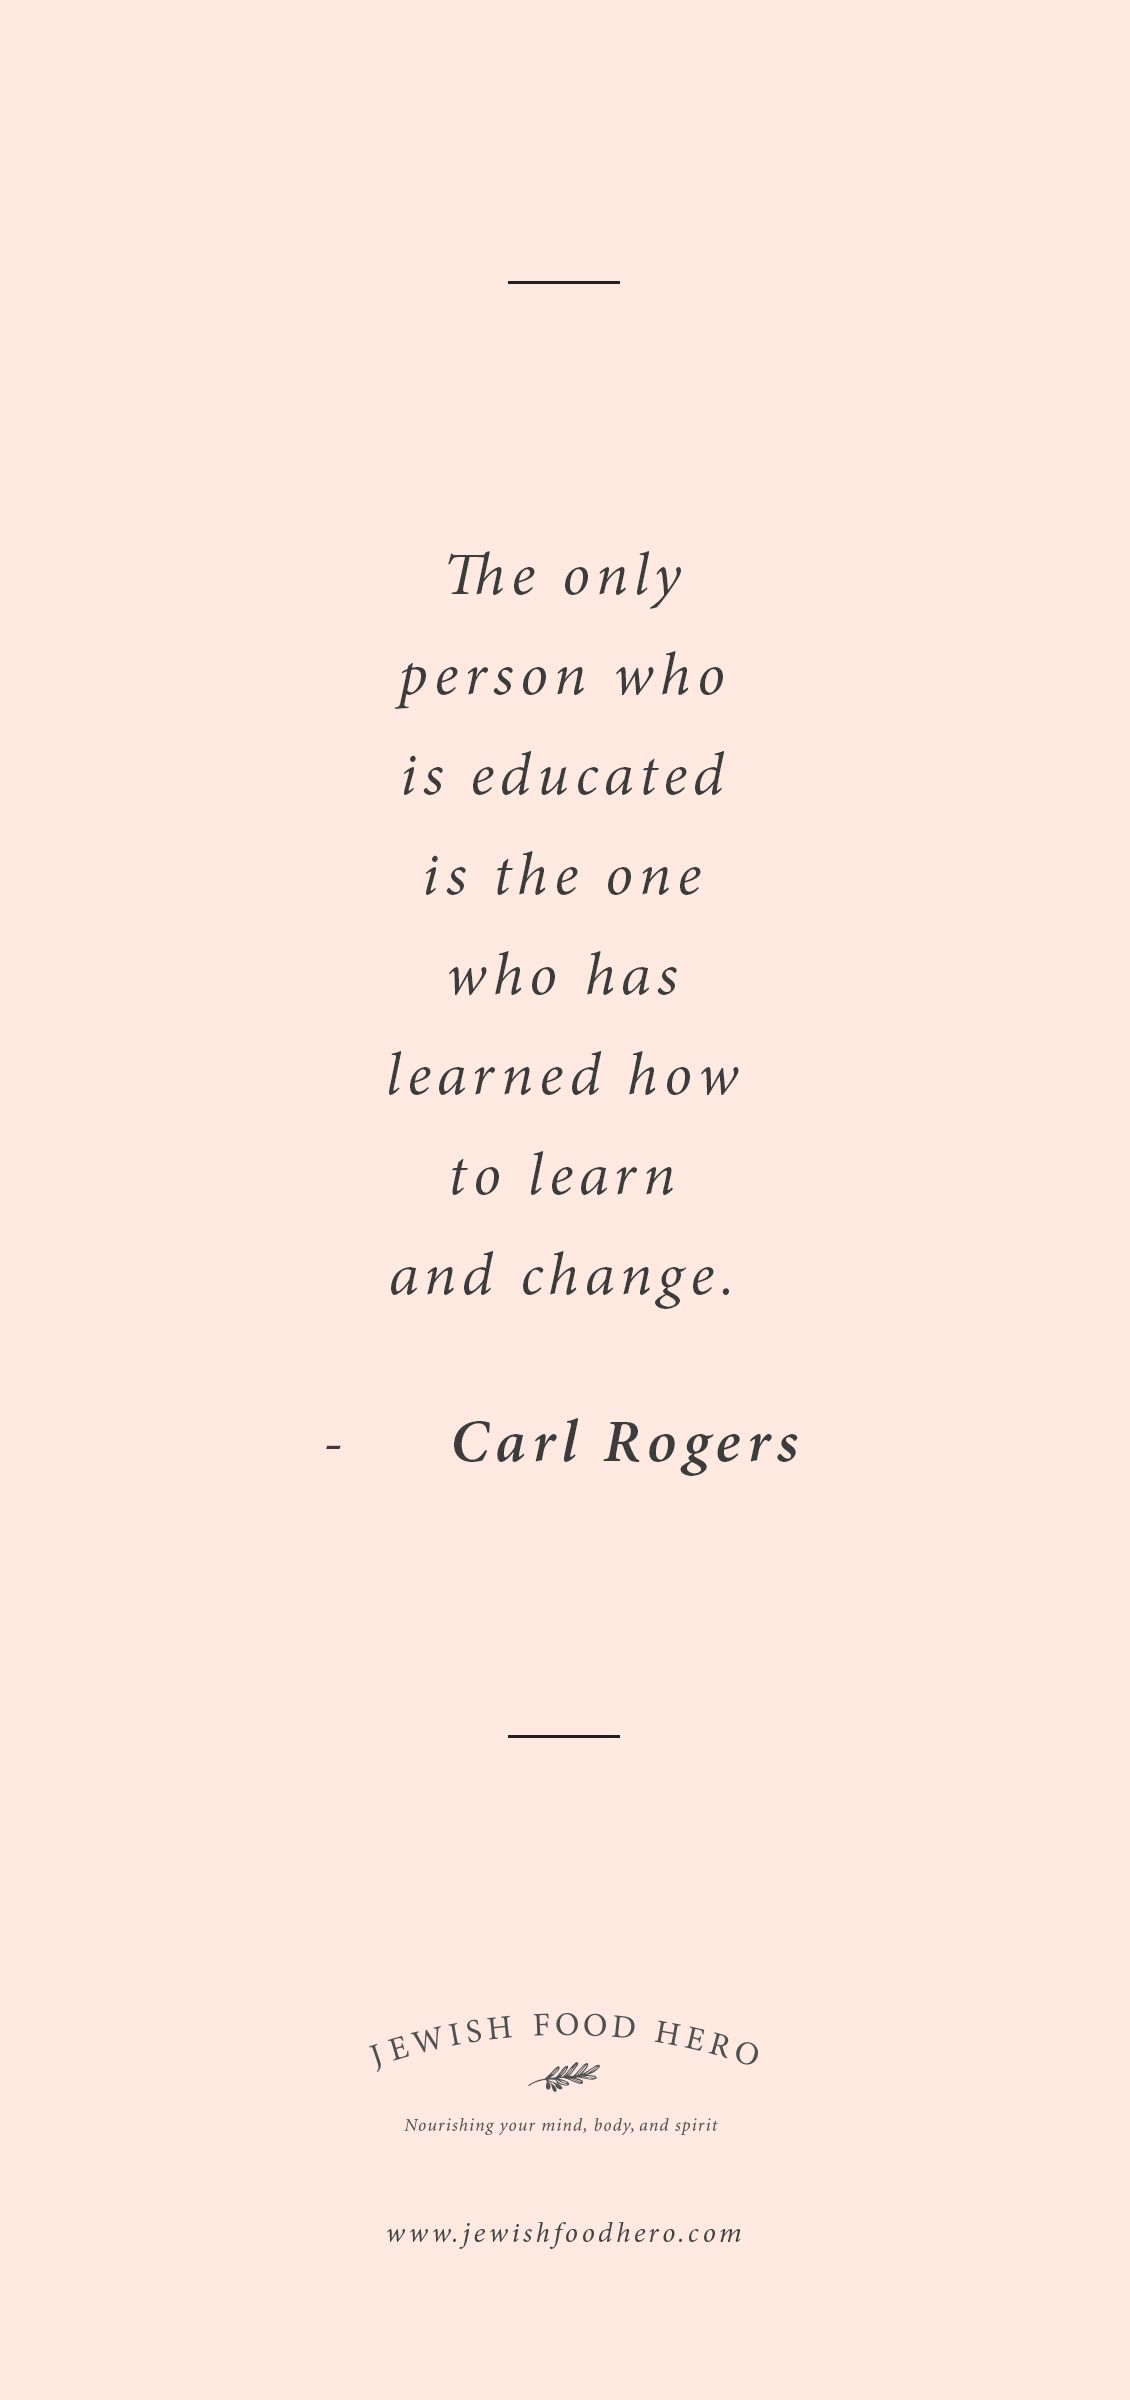 Jewish Quotes On Life Carl Rogers Quotation  From Jewish Food Hero  Pinterest  Carl